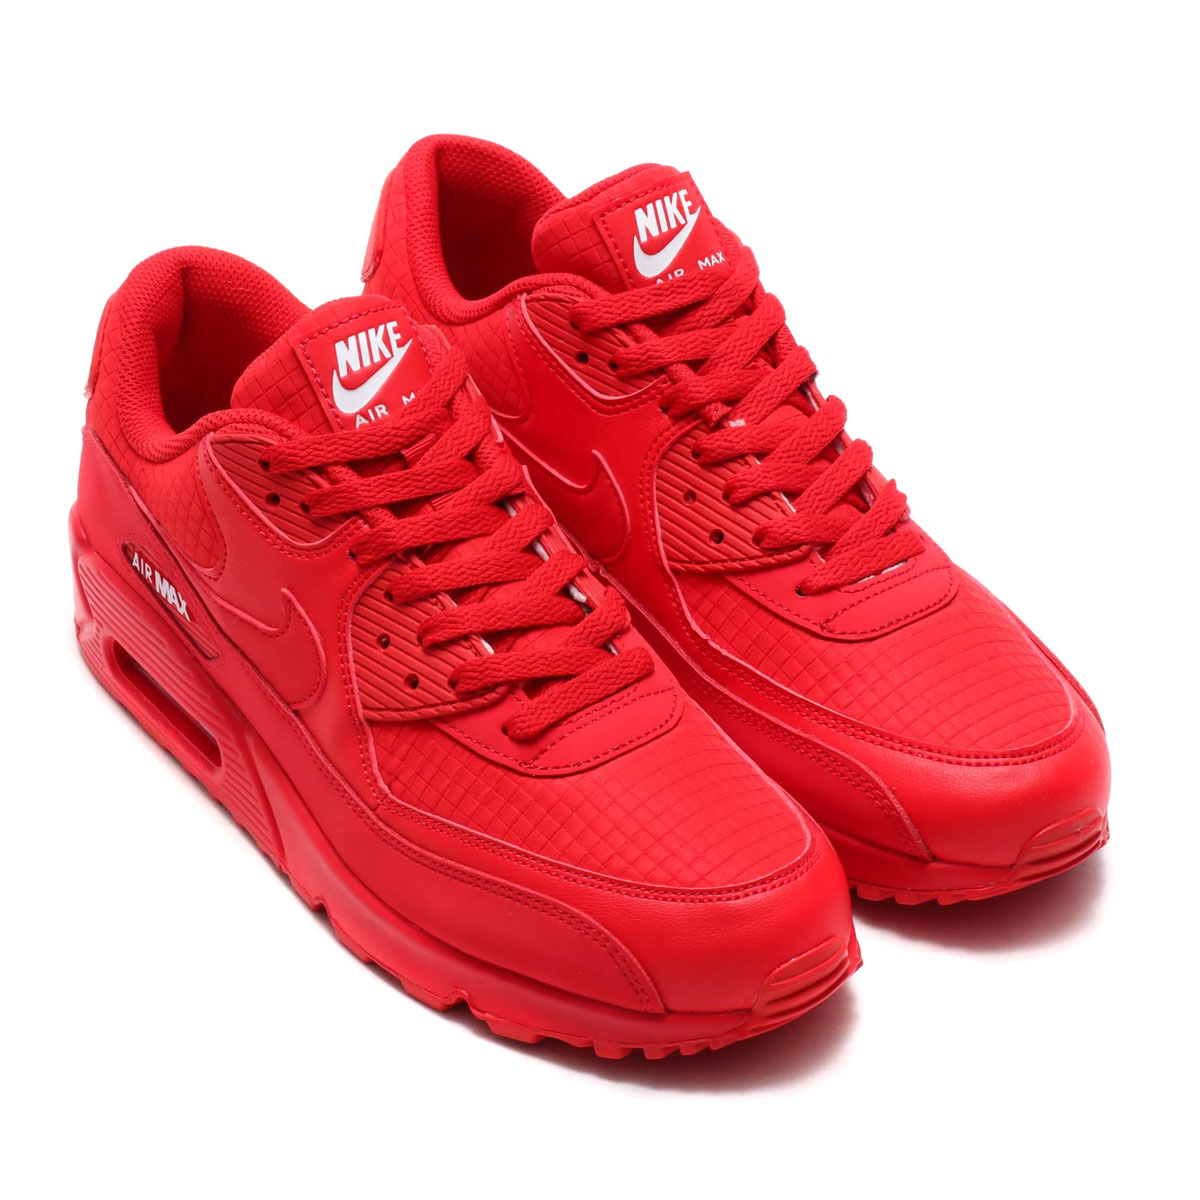 sale retailer d0408 5f6b4 NIKE AIR MAX 90 ESSENTIAL (UNIVERSITY RED WHITE) (Kie Ney AMAX 90 essential)